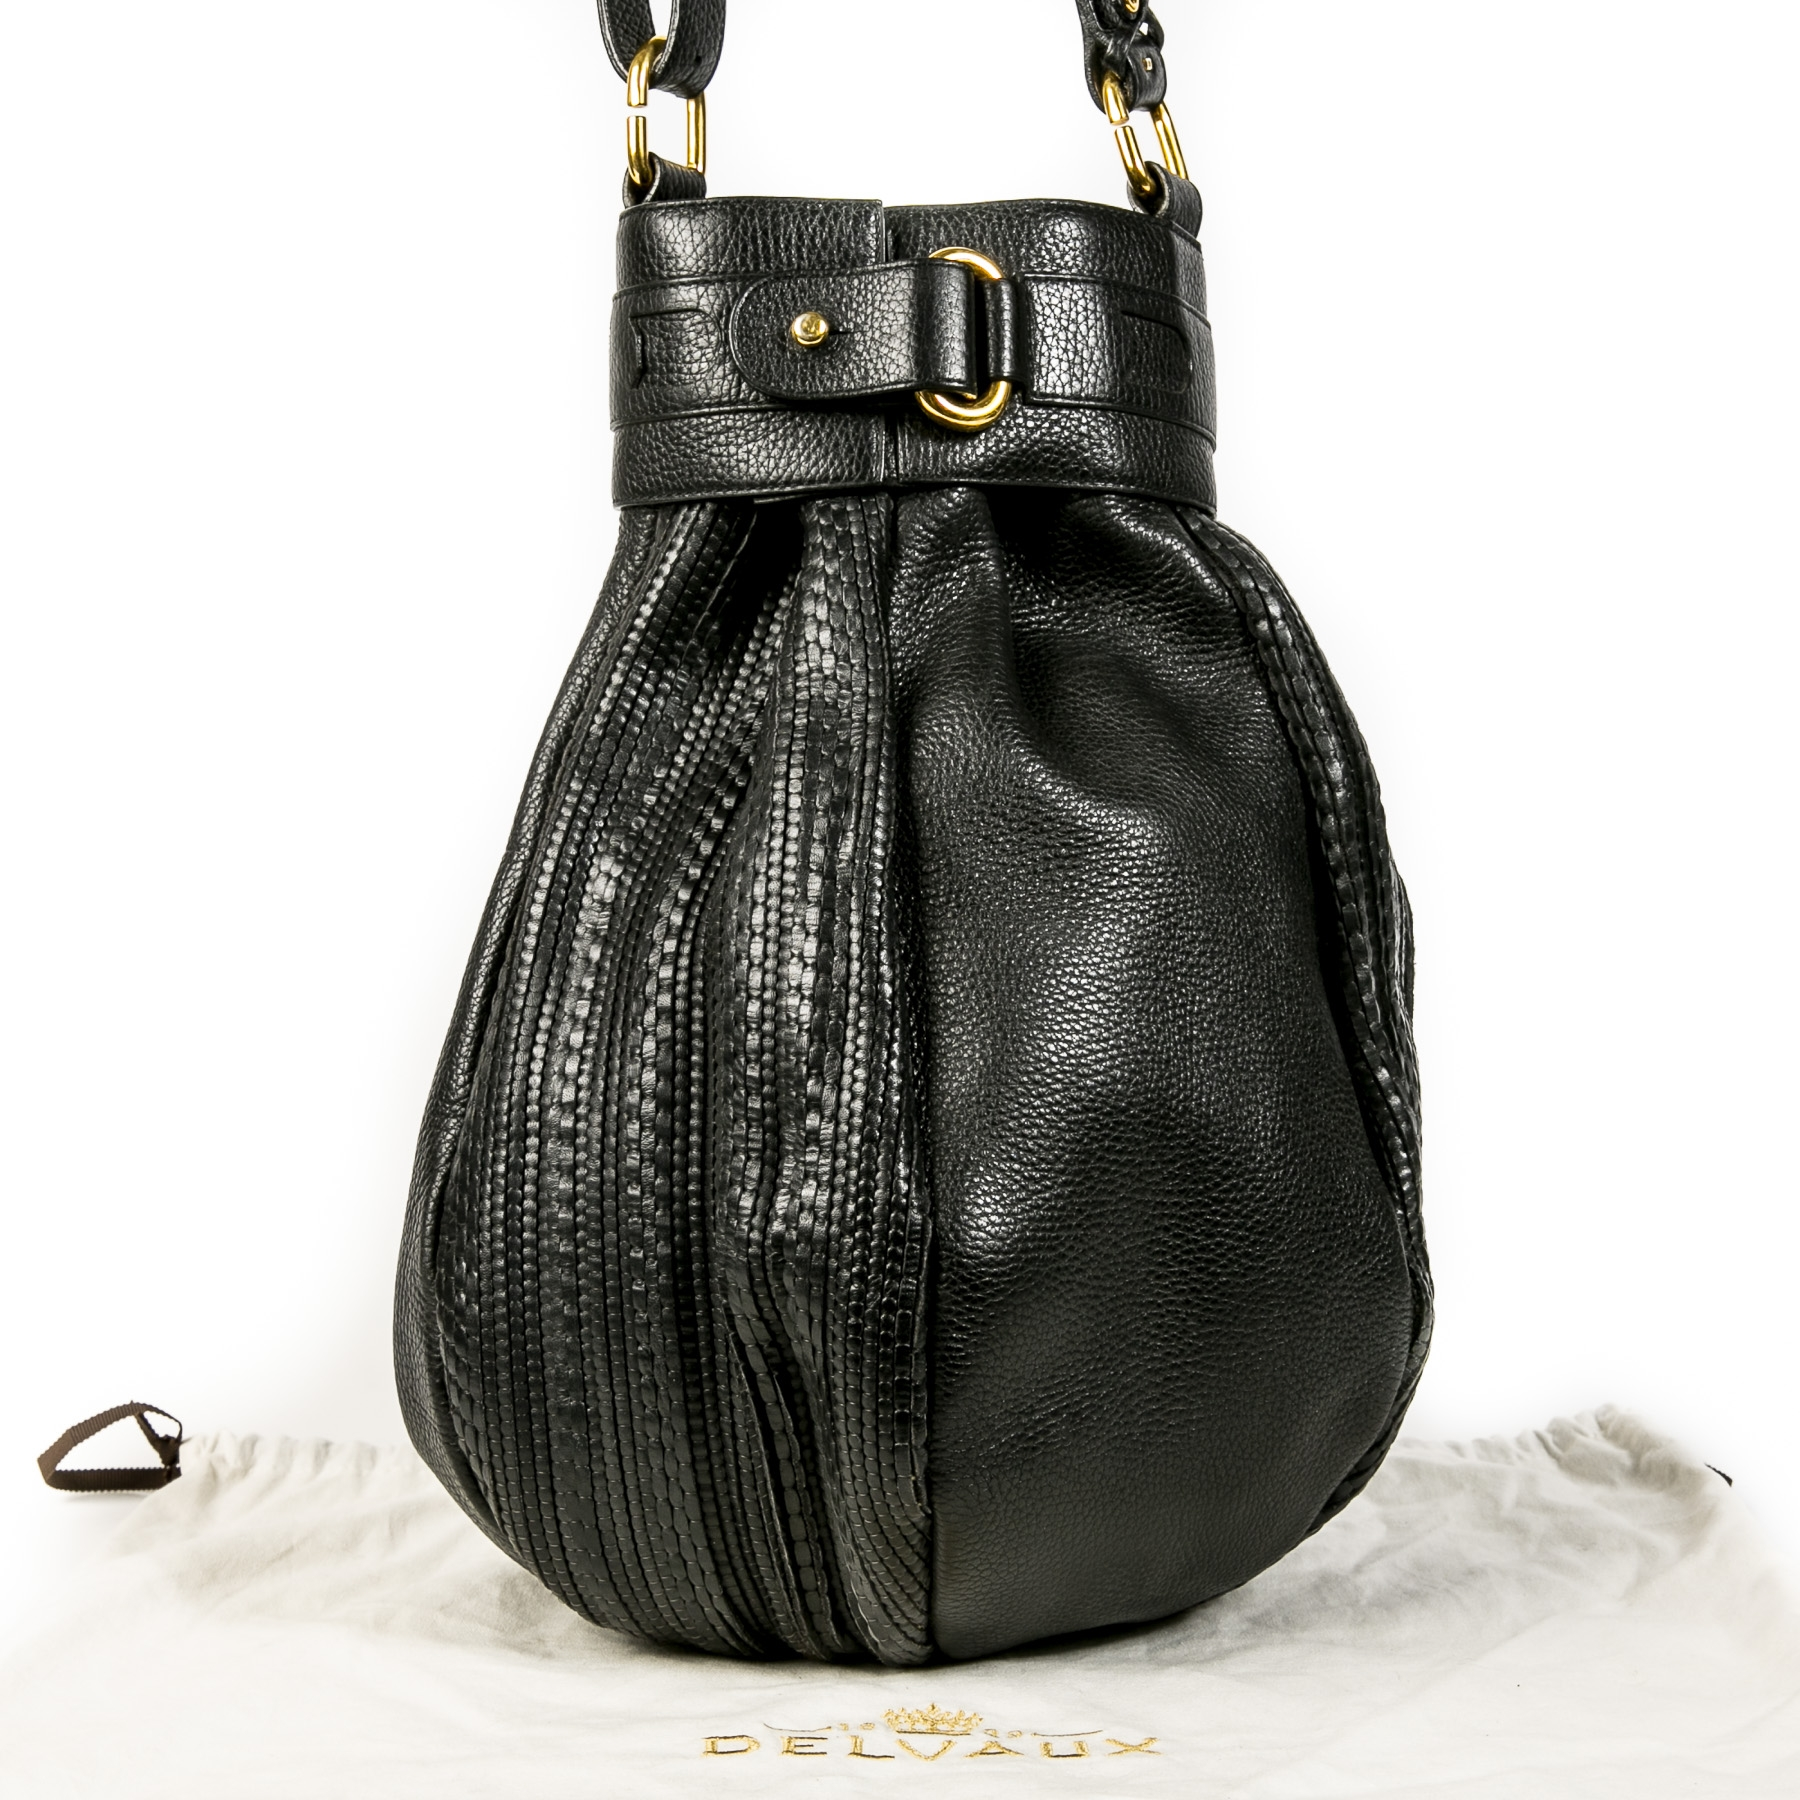 Authentic second-hand vintage Delvaux Toile De Cuir Long Bucket Bag buy online webshop LabelLOV